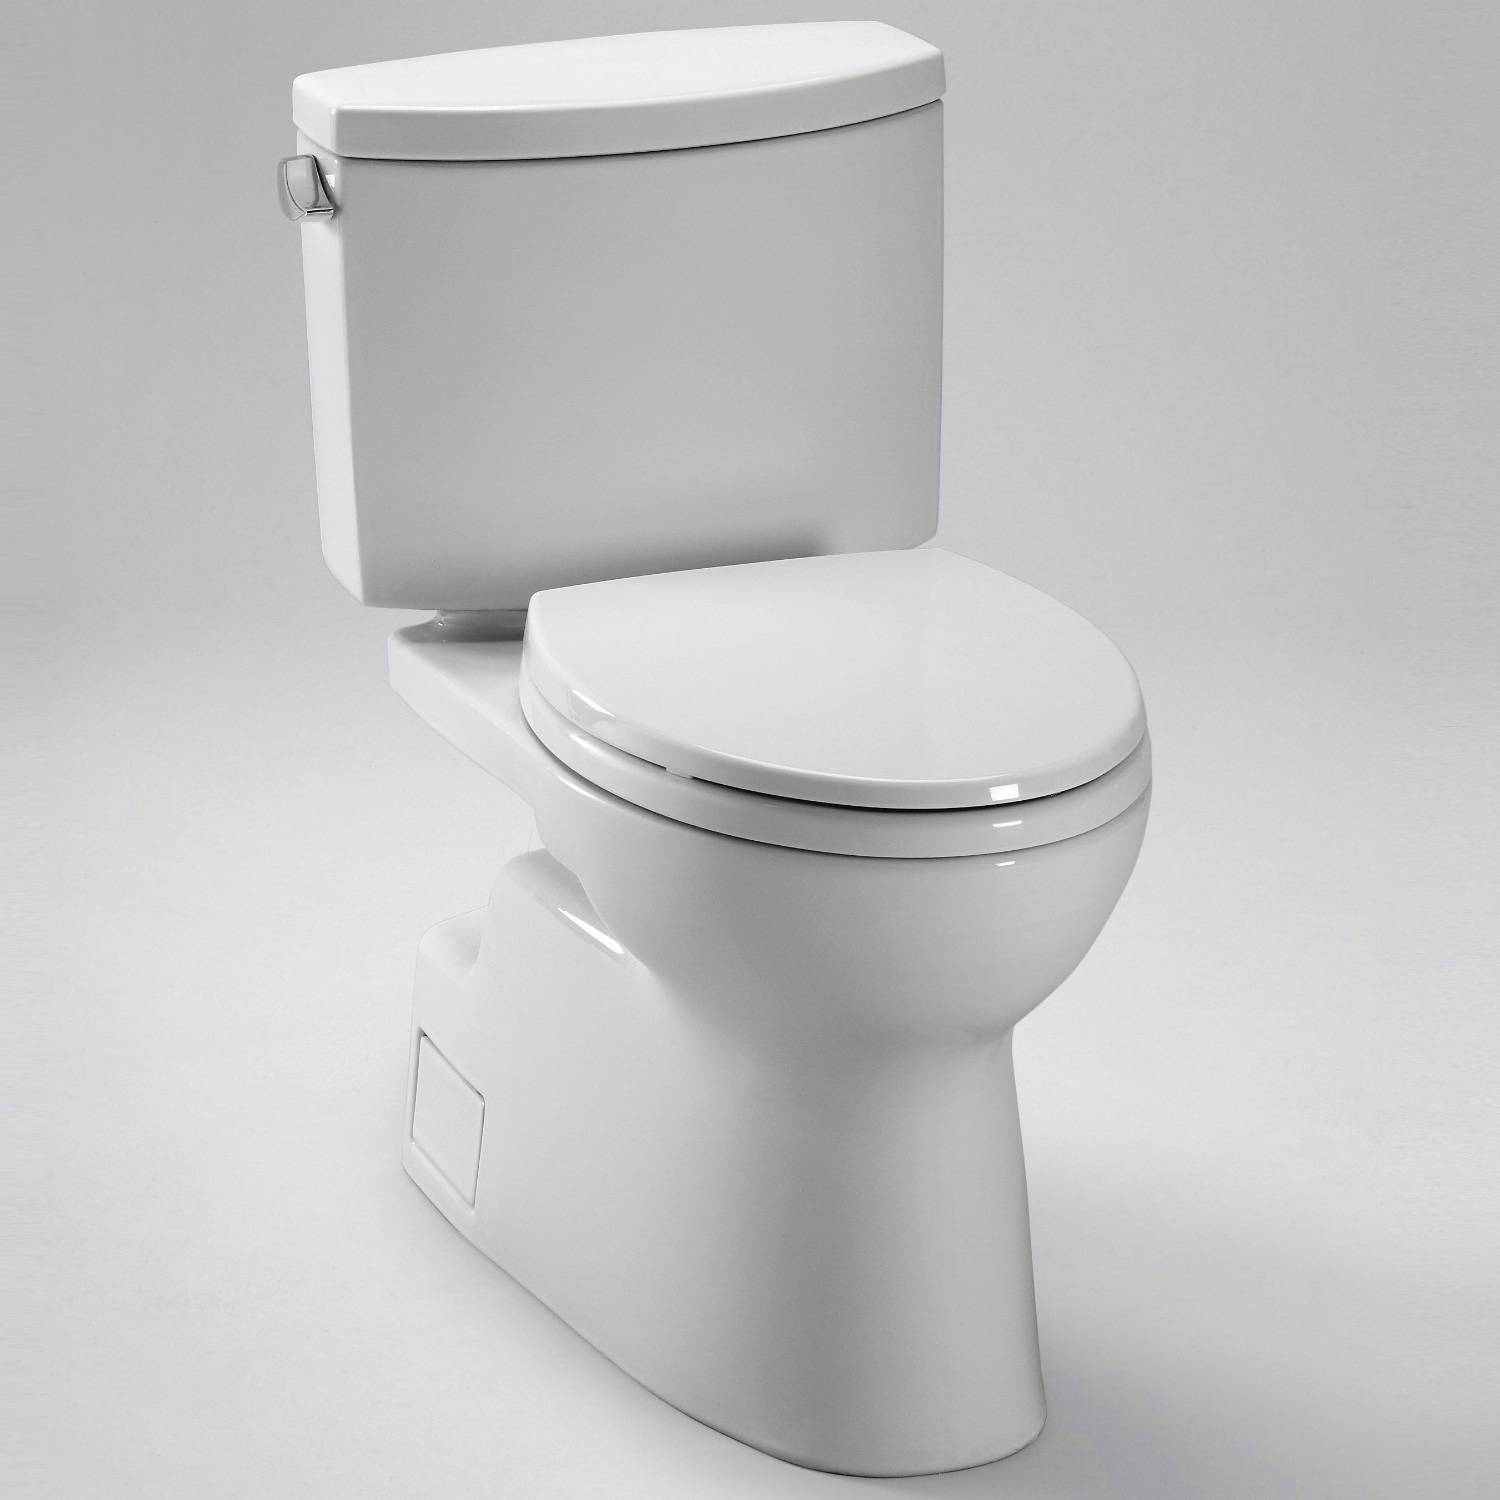 Toto Toilets Promenade for toilet furniture ideas